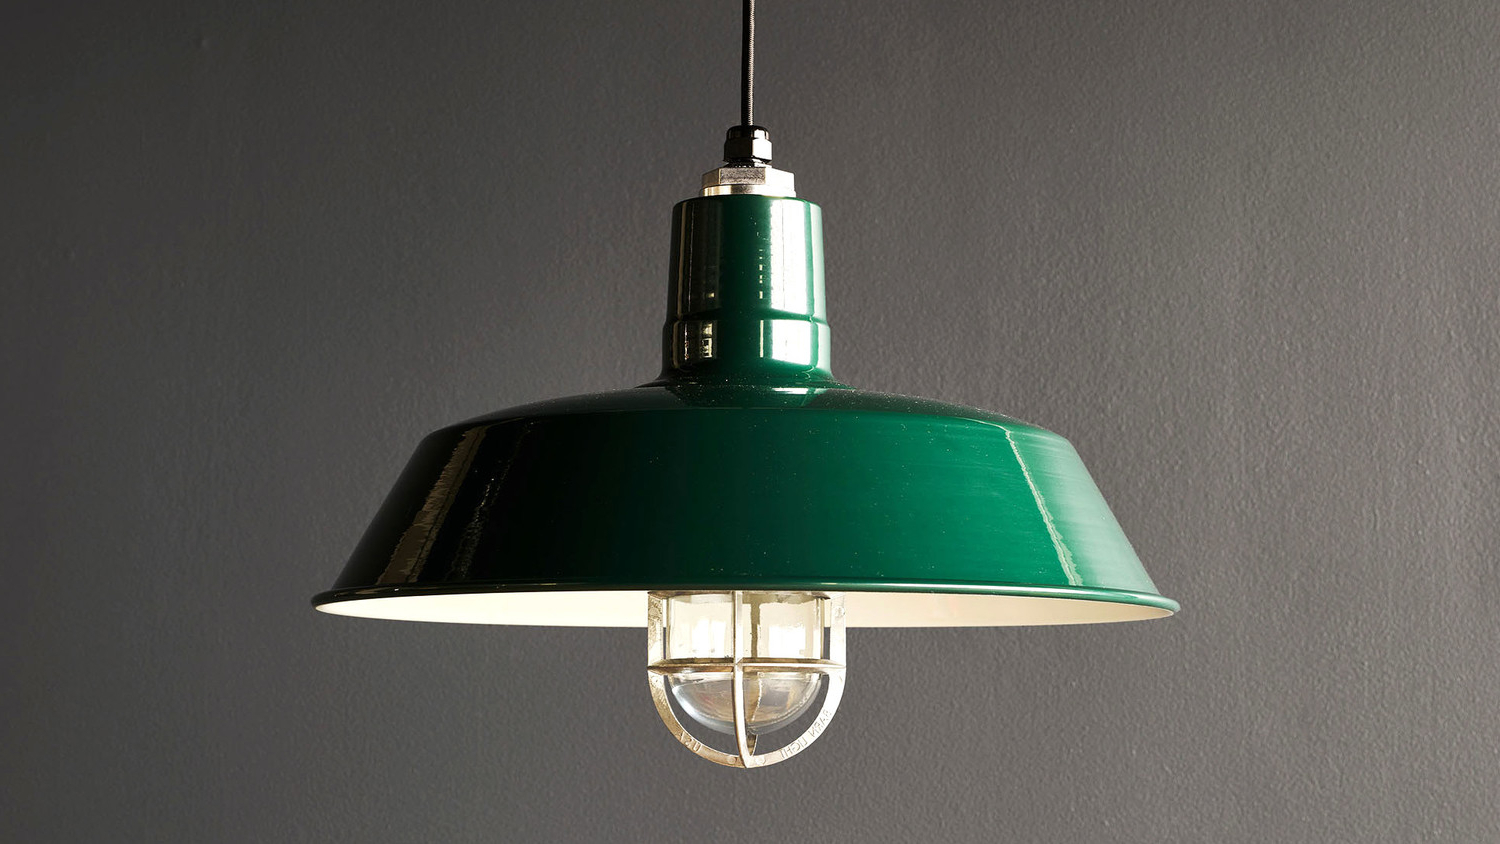 Most Recently Released Ammerman 1 Light Cone Pendants Pertaining To Special Prices On Serena 1 Light Cone Pendant Ivy Bronx (View 16 of 25)